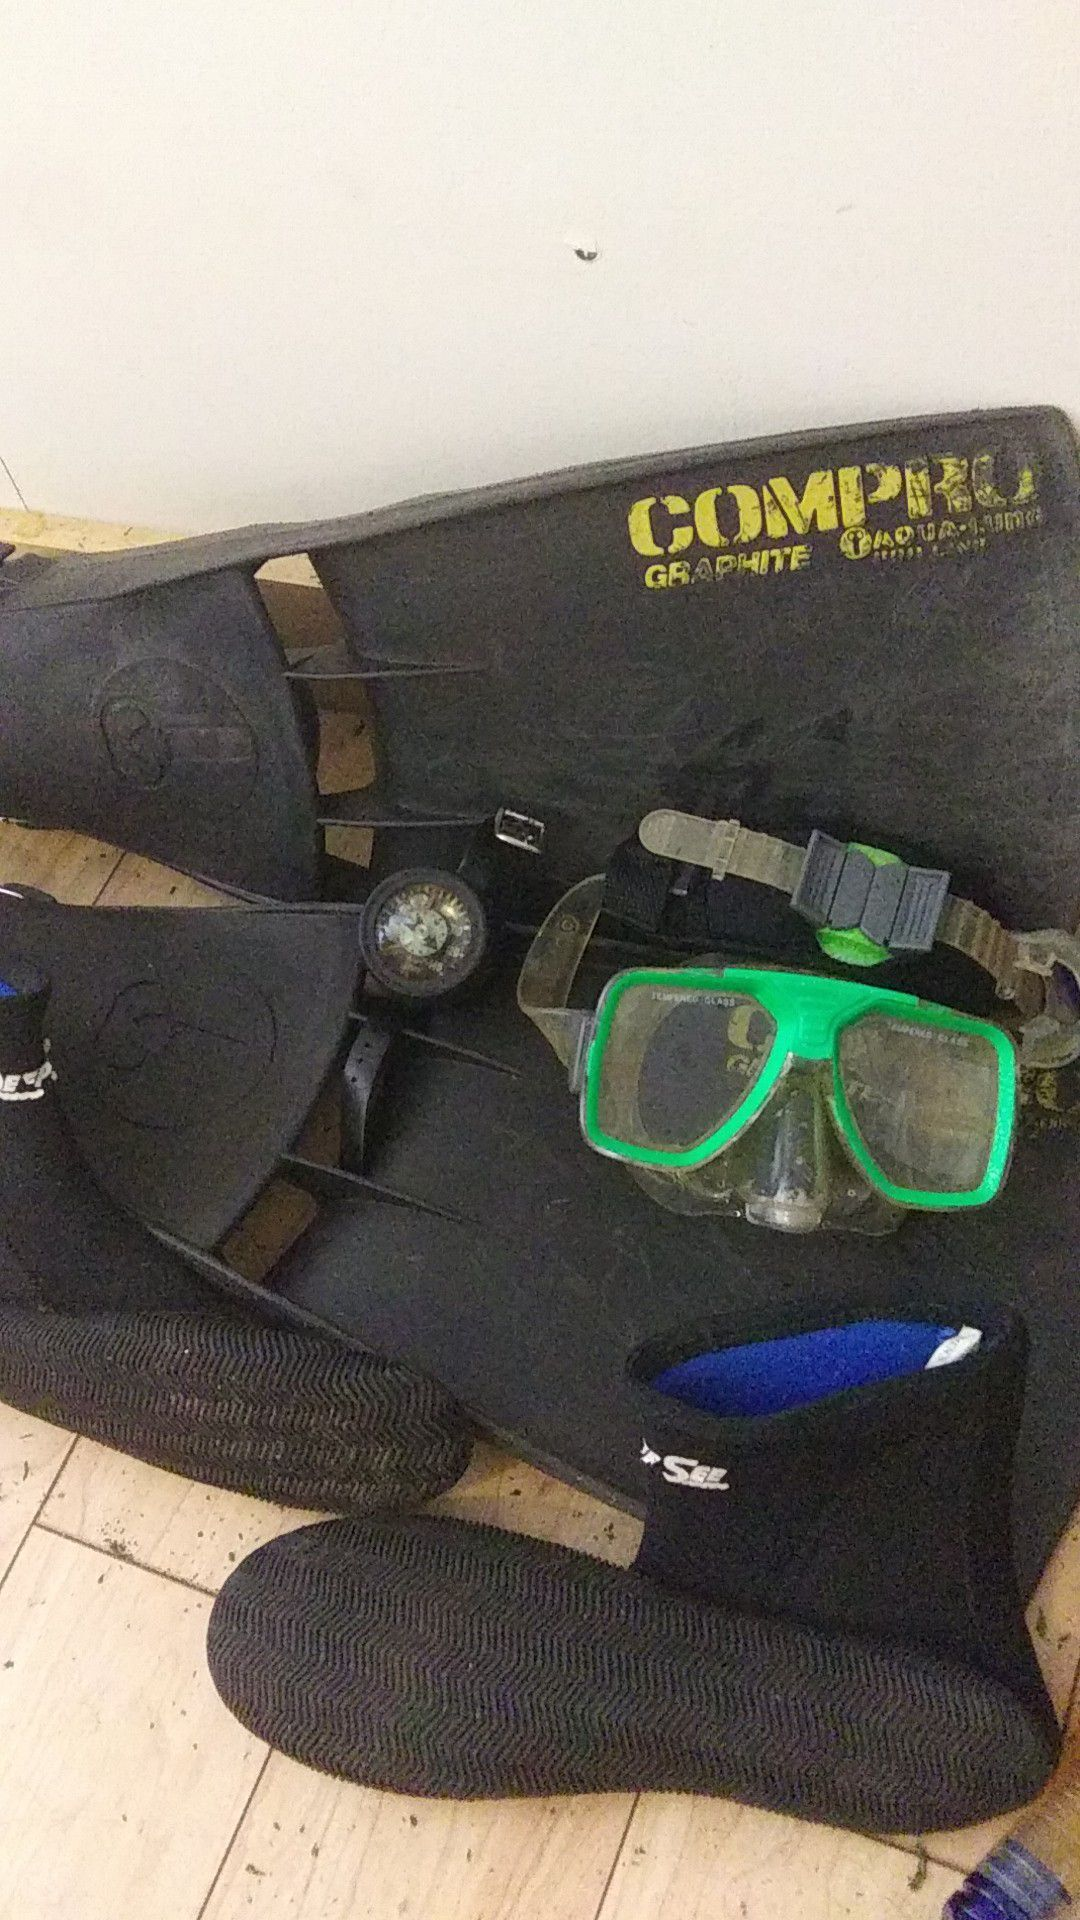 Photo Compro graphite aqua lung pro line volt dive pressure watch ocean master dive goggles snorkel with deep sea slips over 500 spent barely used